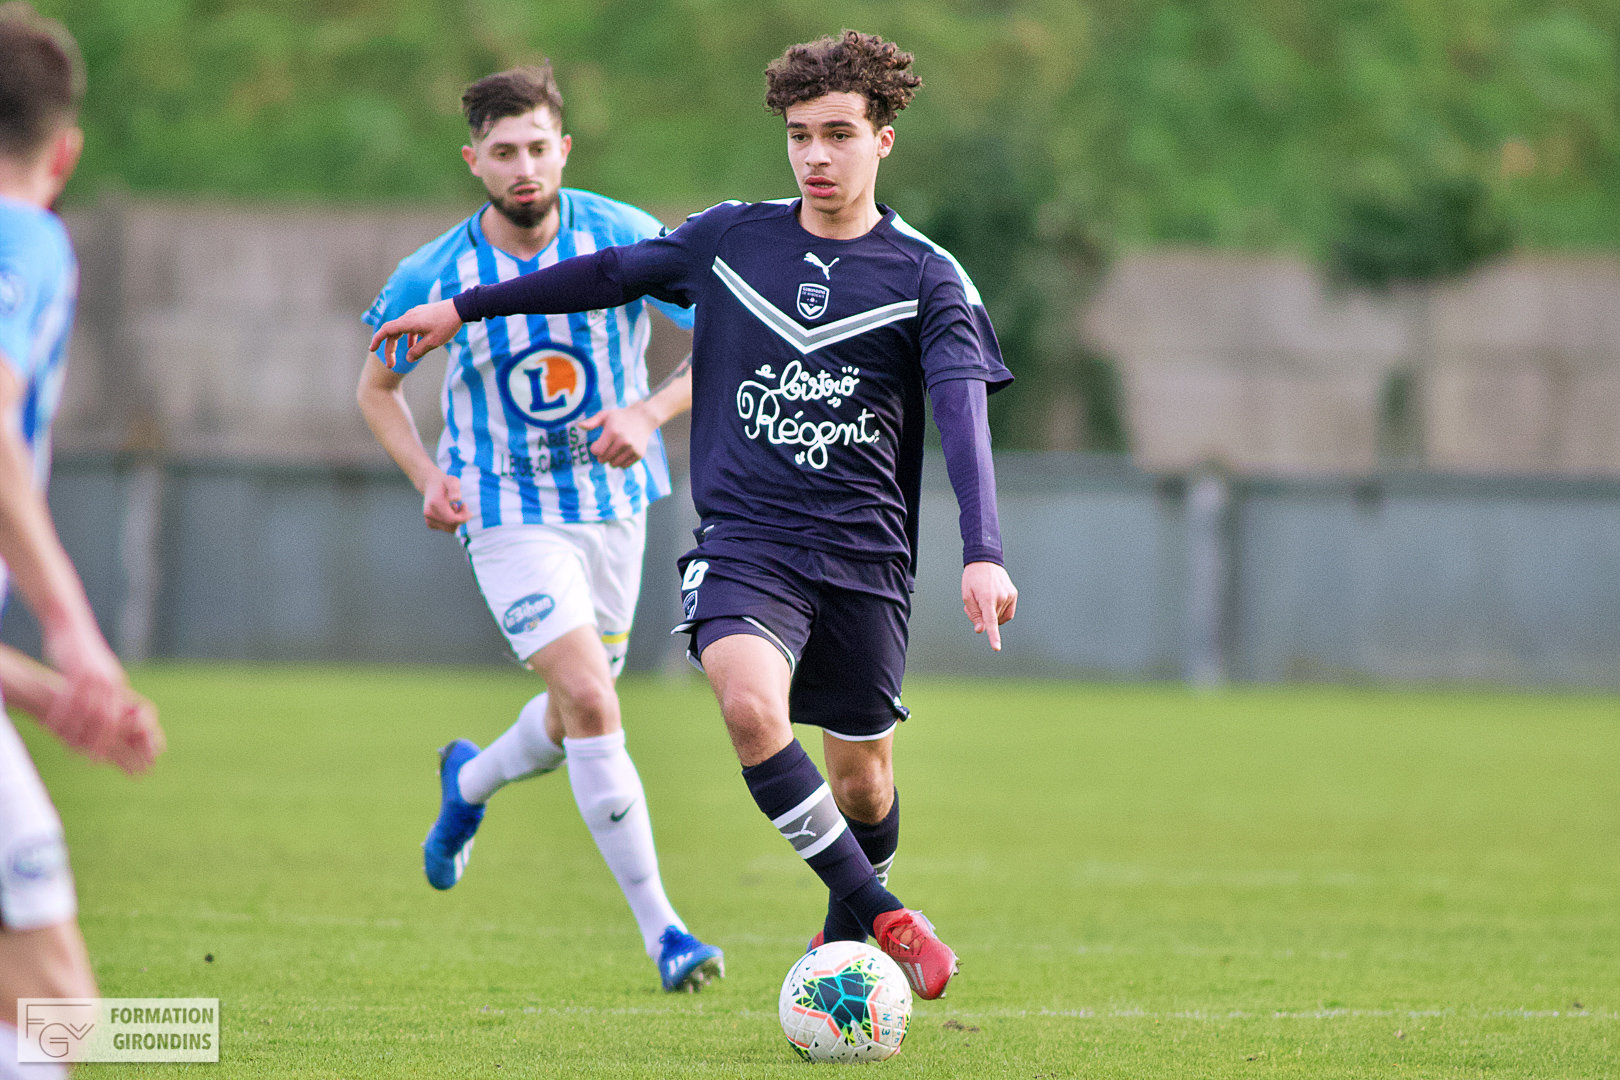 Cfa Girondins : Premier contrat professionnel pour Yassine Boujouama - Formation Girondins